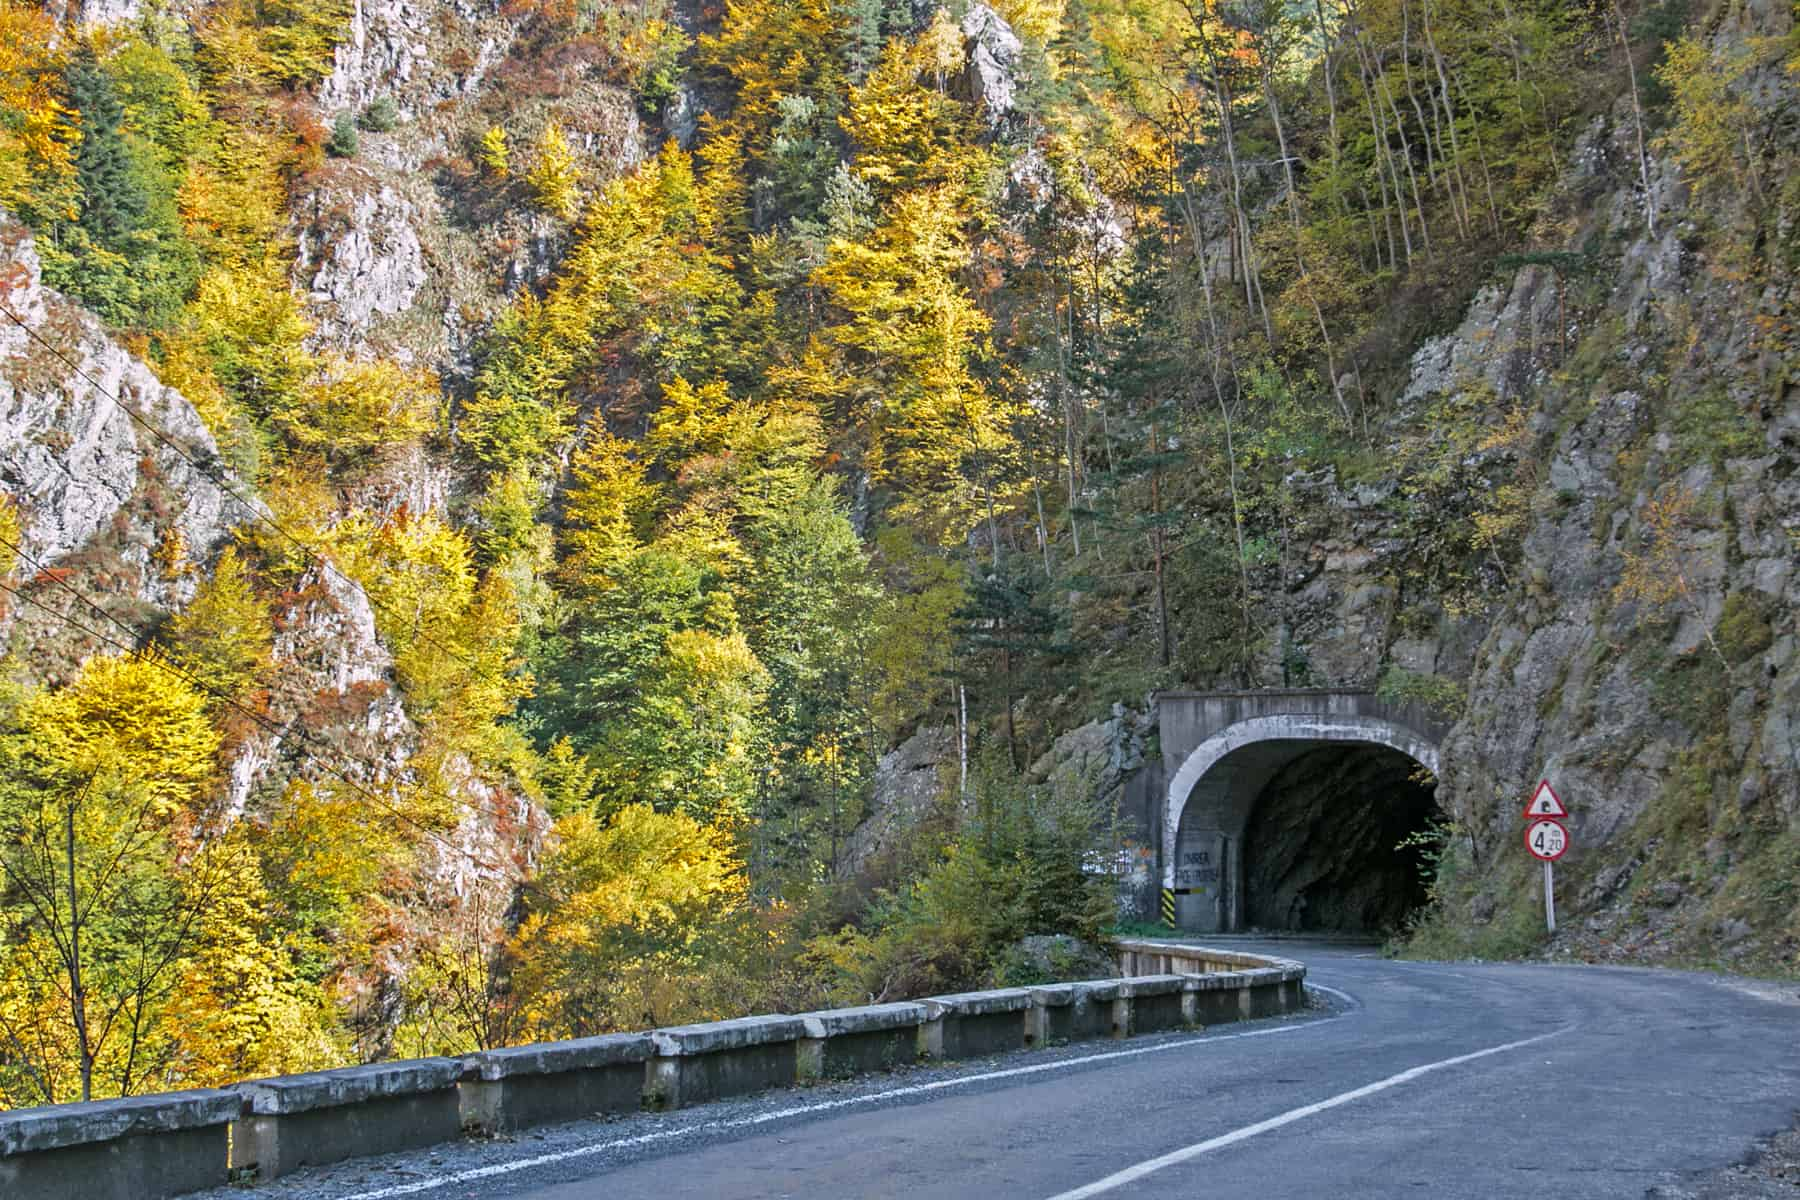 A road enters a tunnel through a mountain covered in colourful trees